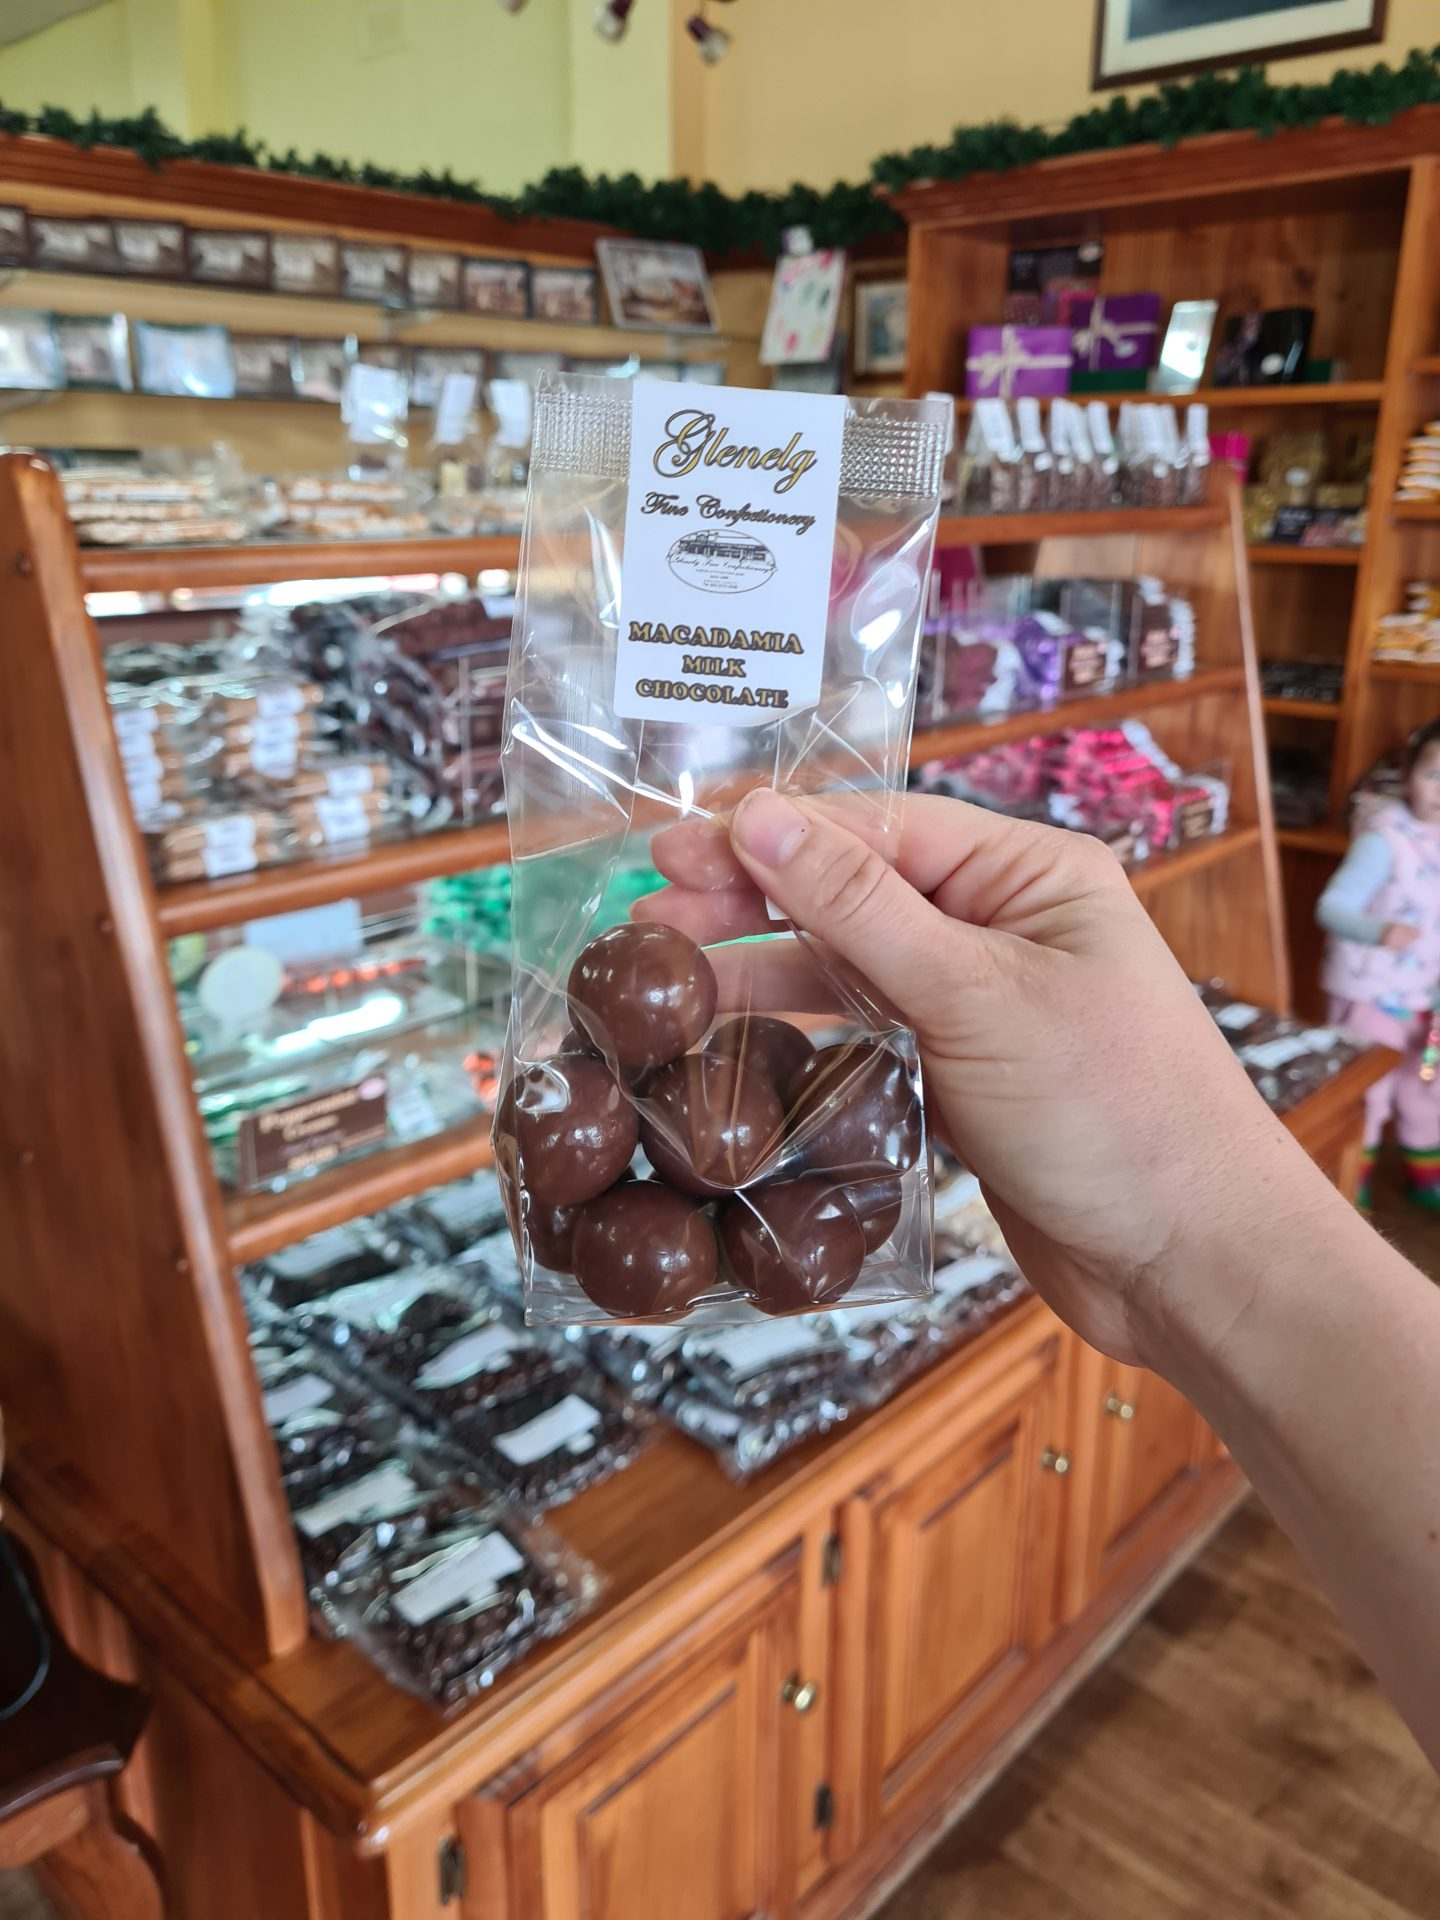 Glenelg Fine Chocolates